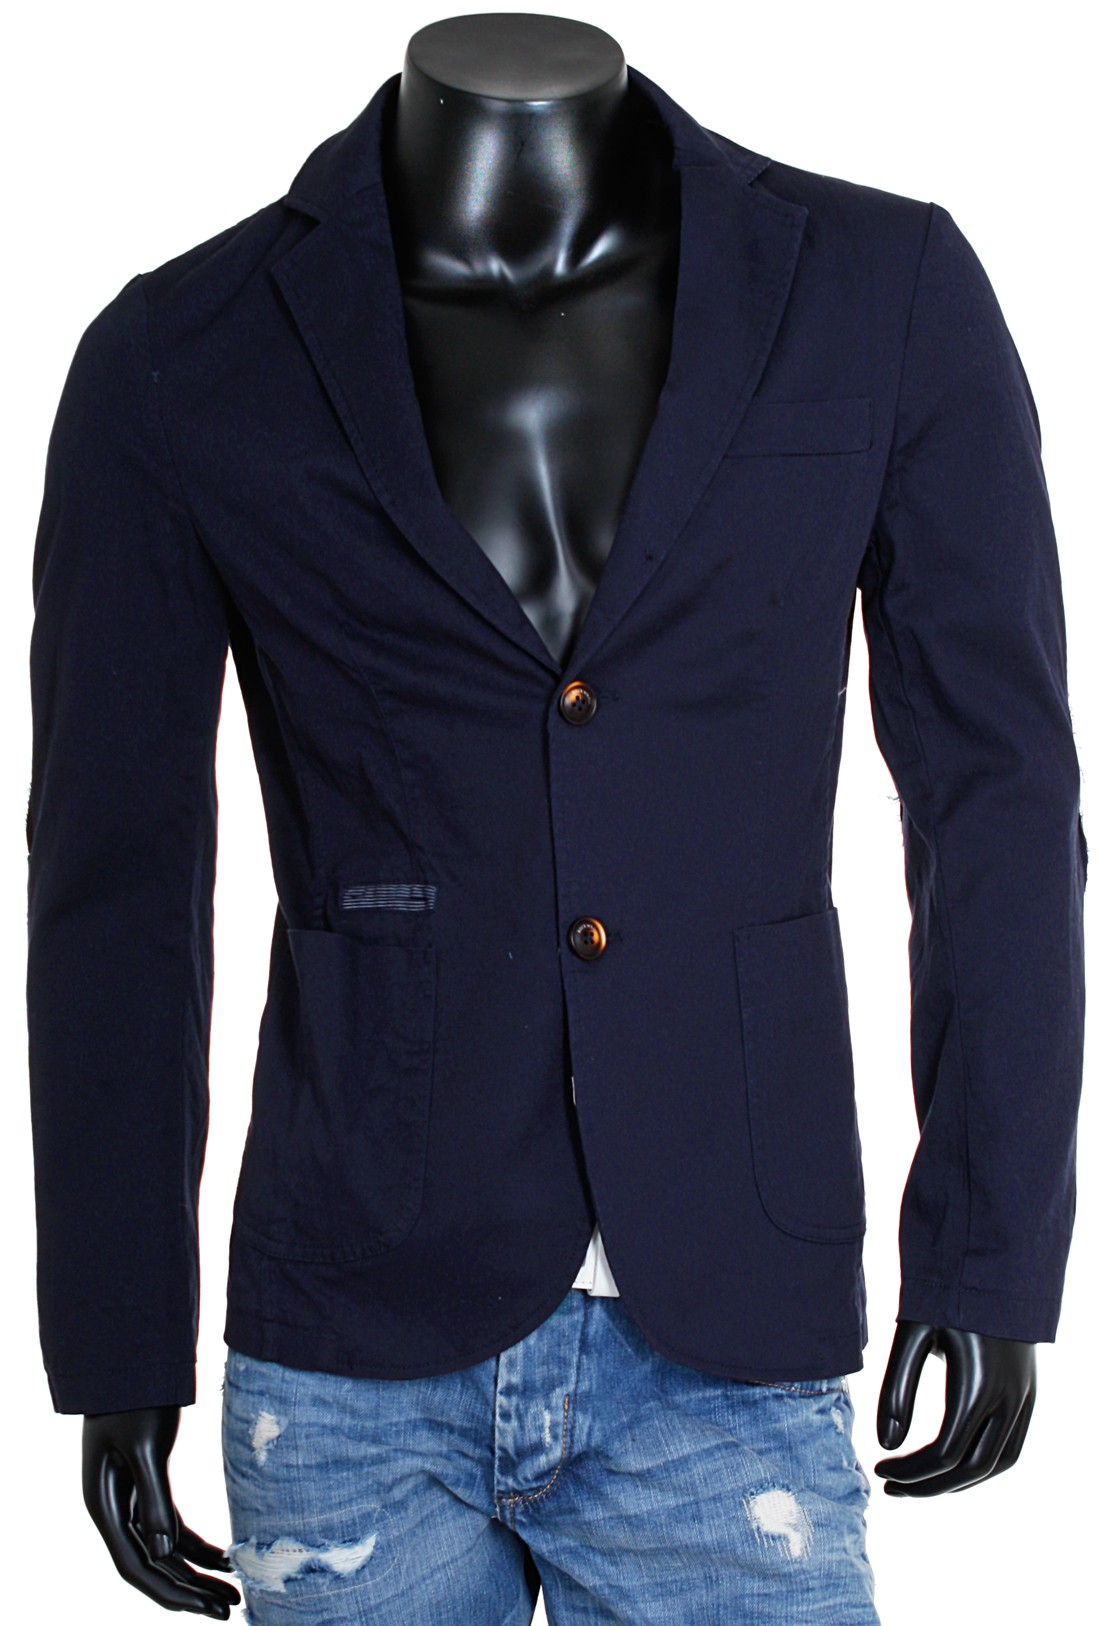 Size up or down depending on how fitted you like to wear the blazer Awesome21 Women's Stretch 3/4 Gathered Sleeve Open Blazer Jacket. by Awesome $ - $ $ 17 $ 26 97 Prime. FREE Shipping on eligible orders. Some sizes/colors are Prime eligible. 4 out of 5 stars